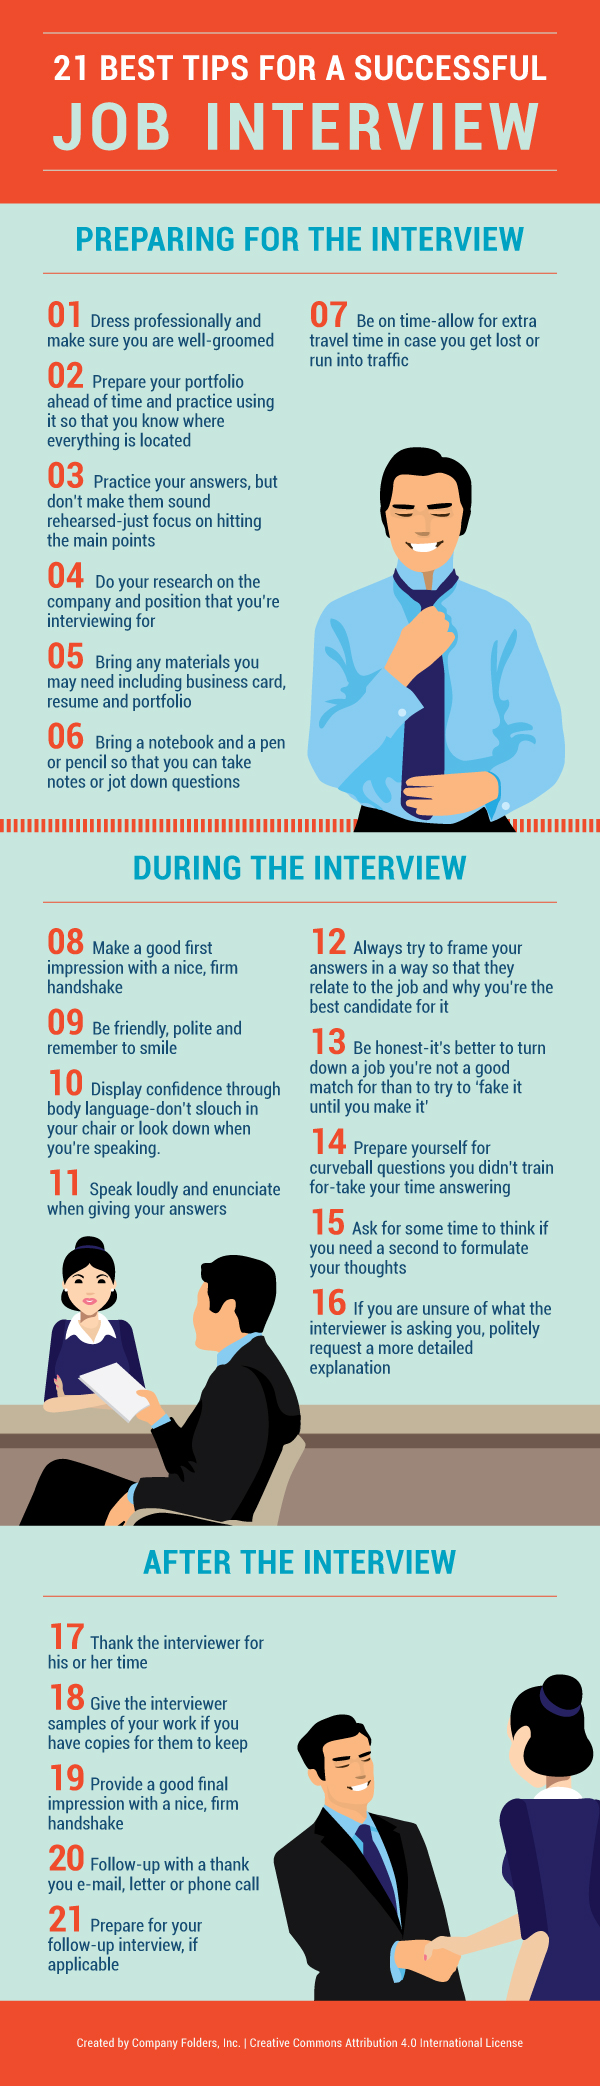 pictures How to Avoid Asking Bad Interview Questions